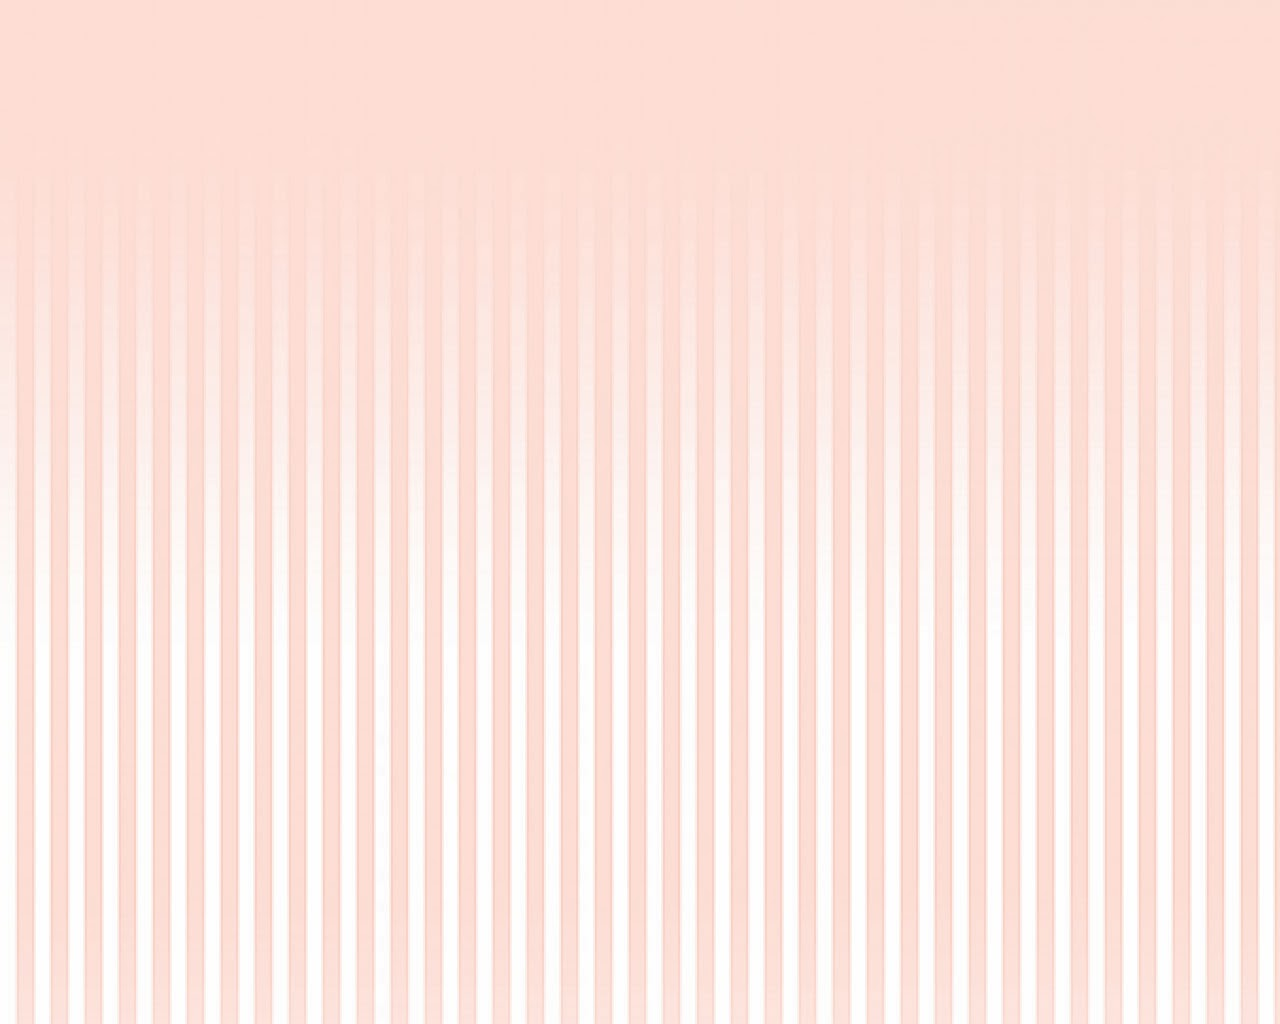 Pink And Blue Striped Wallpaper 2989 Wallpaper: Pink & Peach Colour Part 2